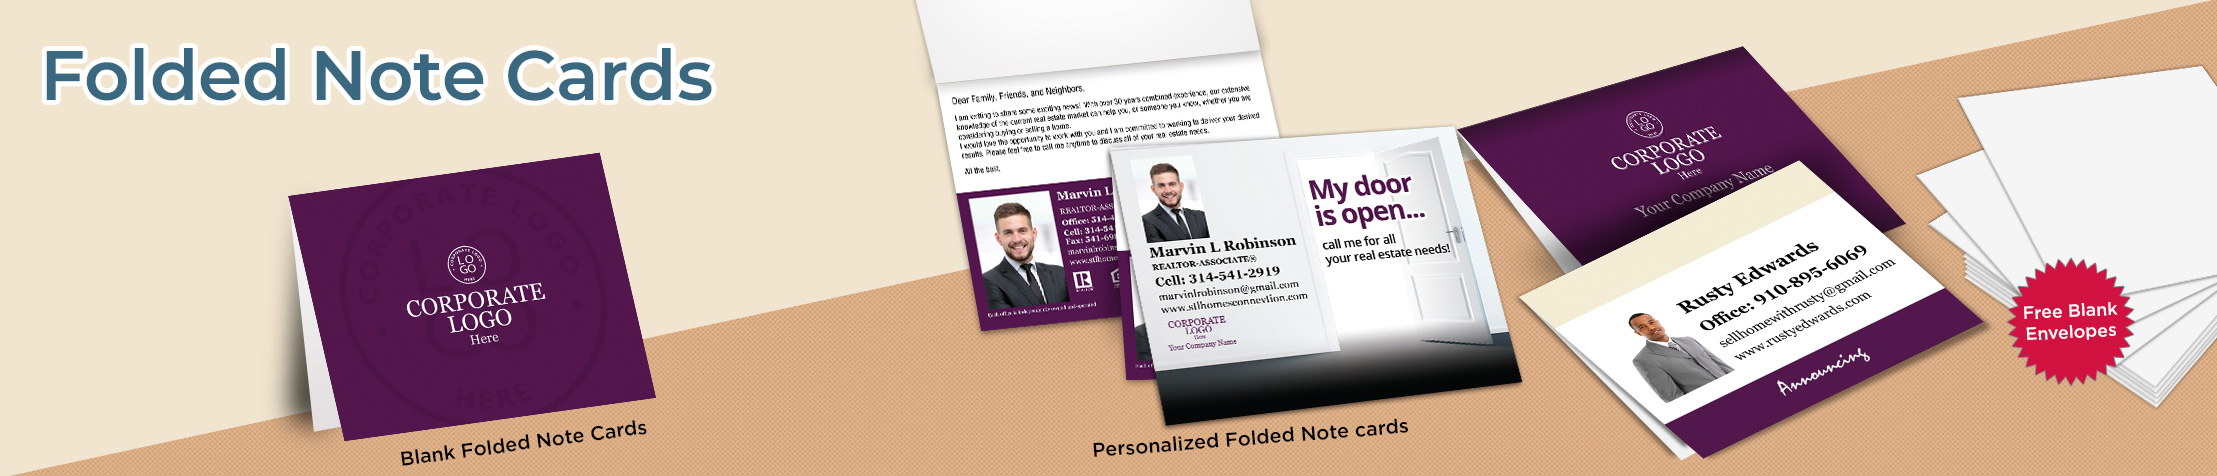 Berkshire Hathaway Real Estate Folded Note Cards - Berkshire Hathaway stationery | BestPrintBuy.com